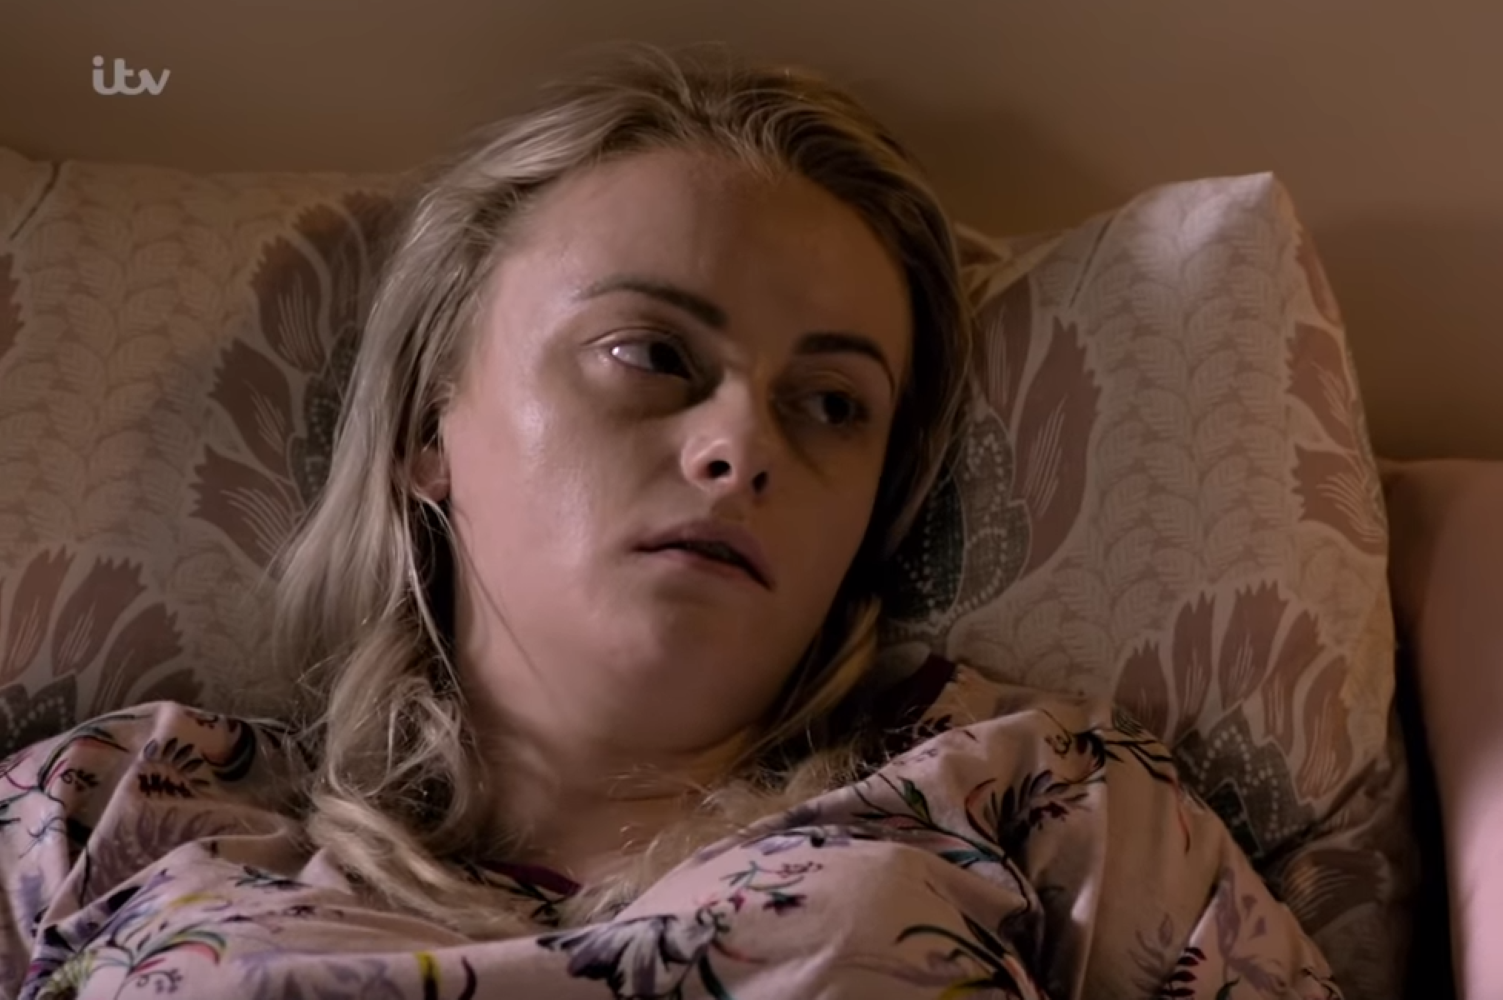 Sinead Osbourne on her death bed